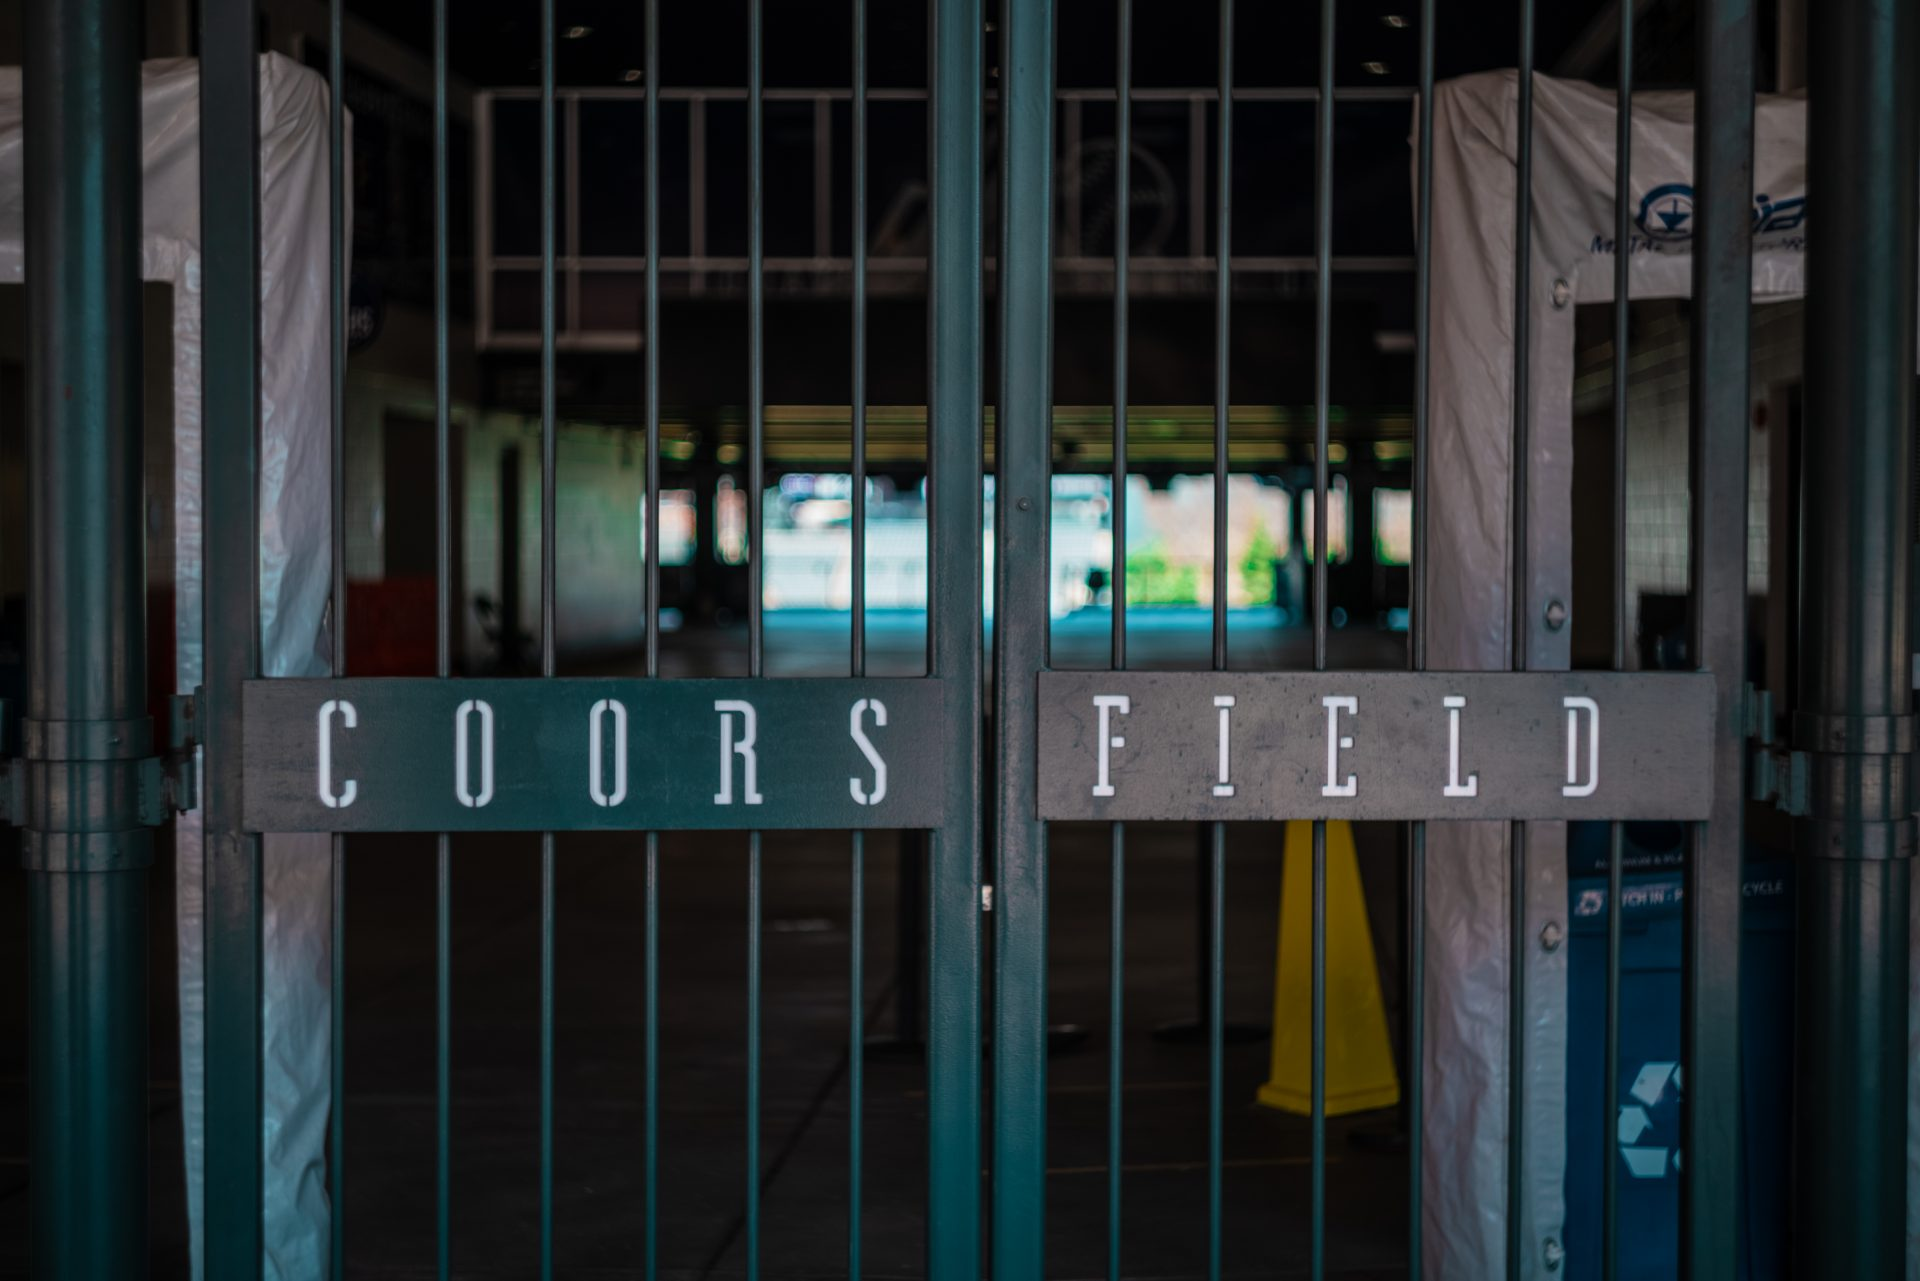 Photo from Sony A7rII of Coors Field's closed gates while the baseball season is postponed.